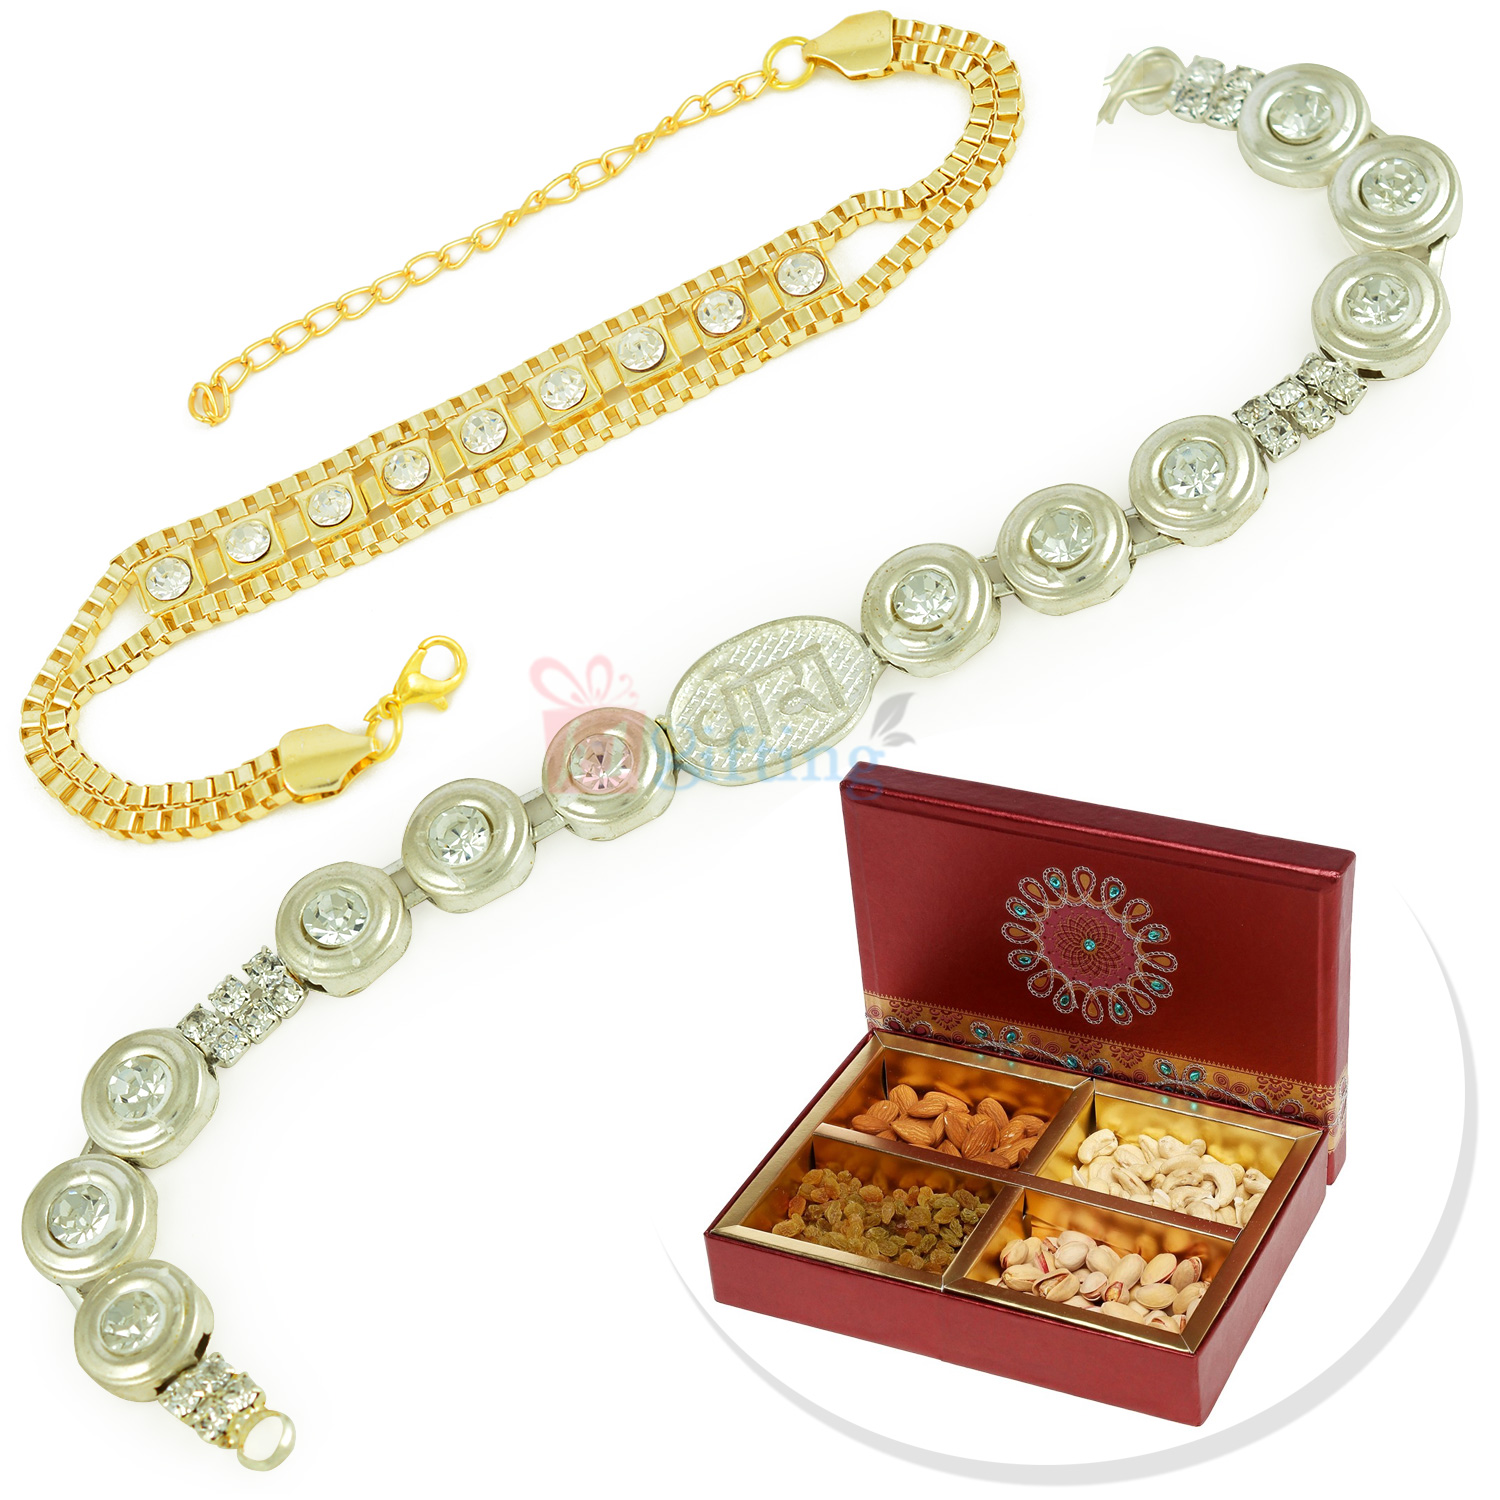 Silver and Golden Touch 2 Bracelet with 4 type Dryfruits Hamper